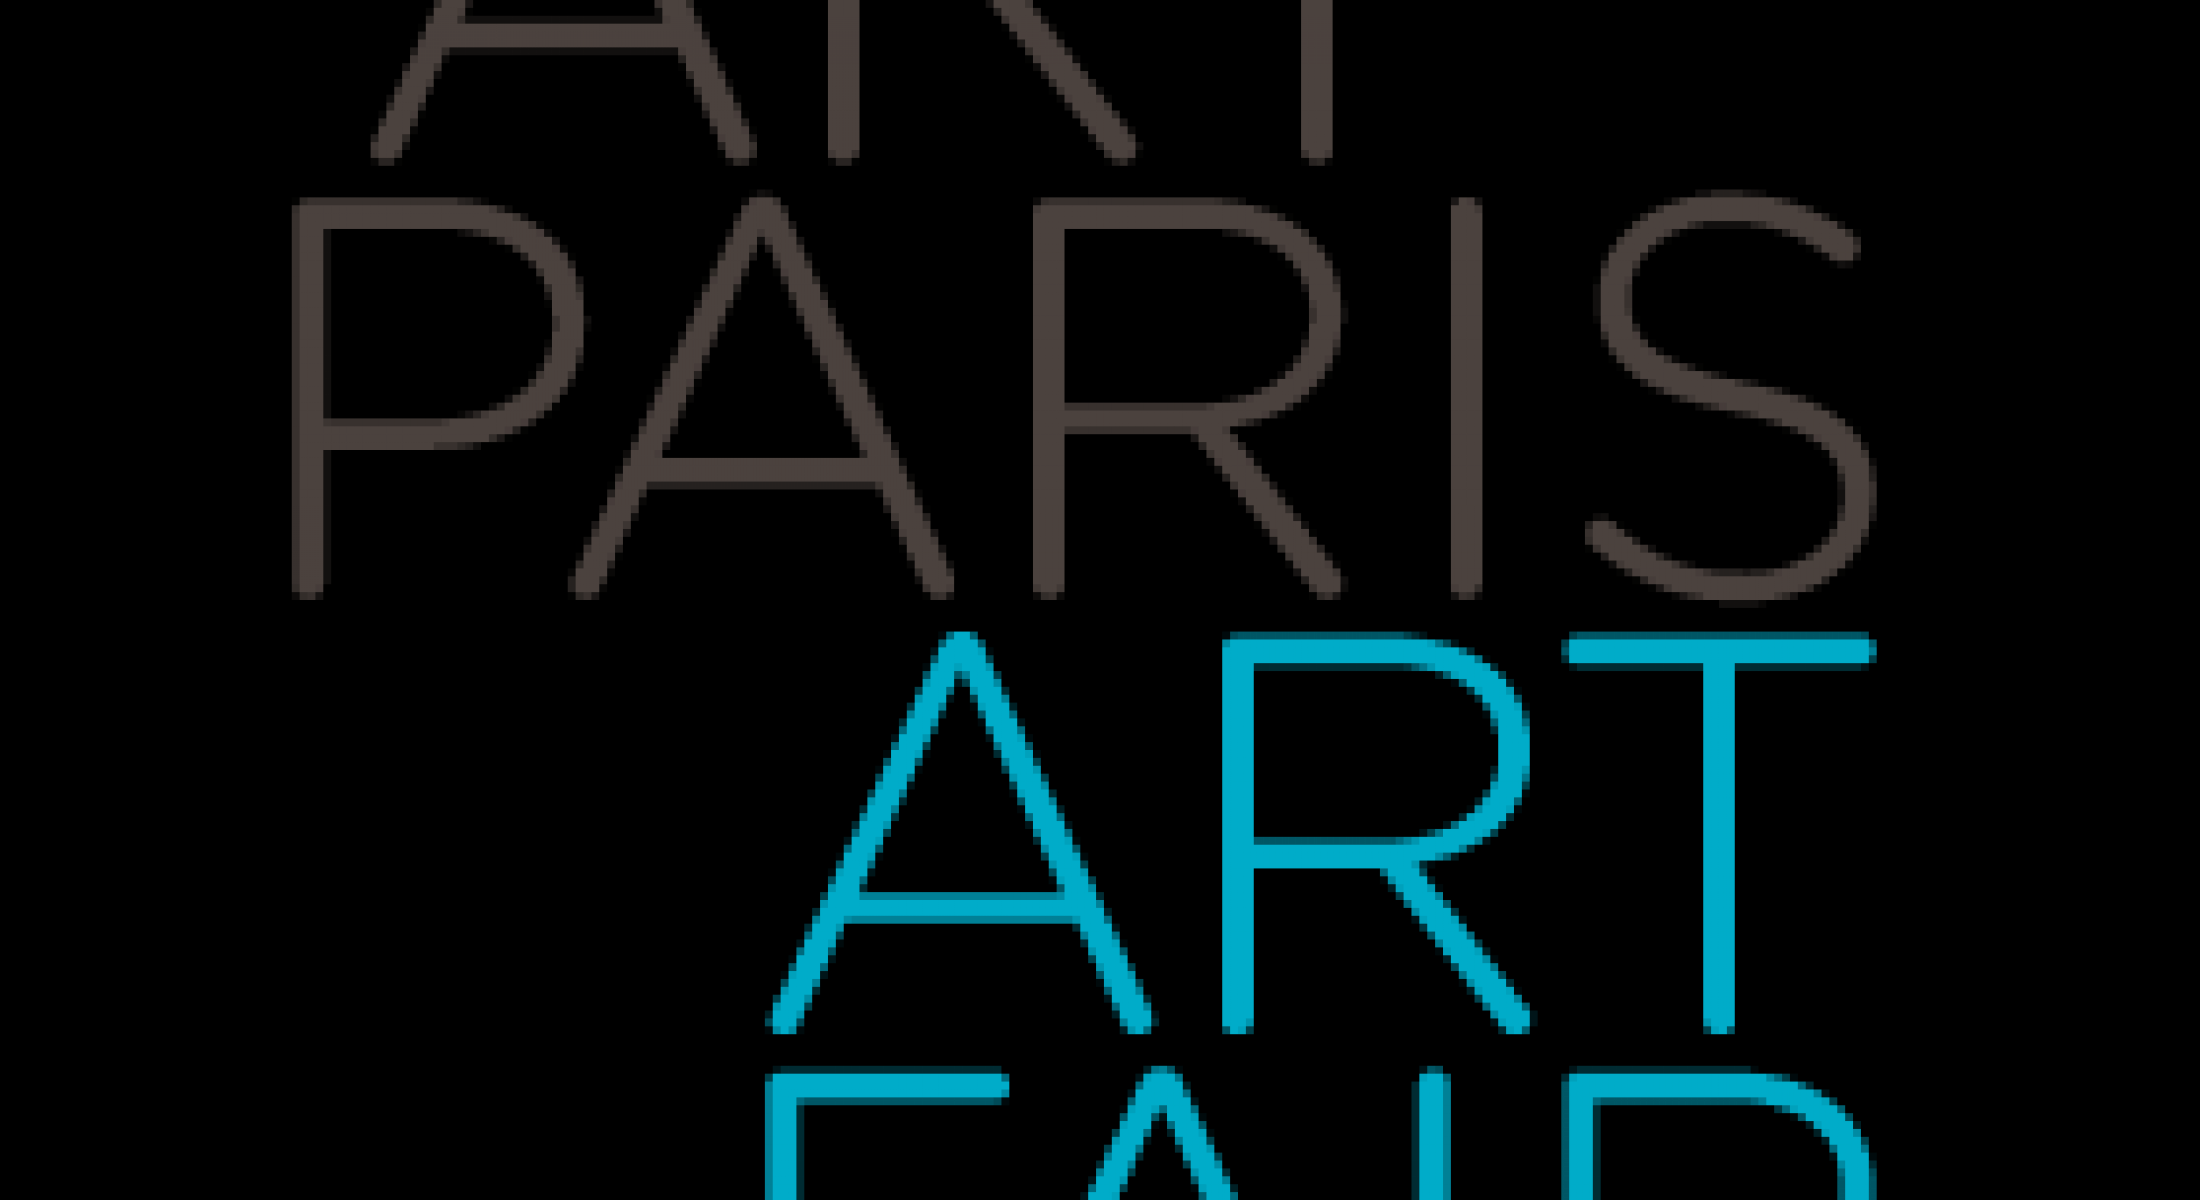 Art Paris Art Fair 2017 - Press release - January 2017, 2017